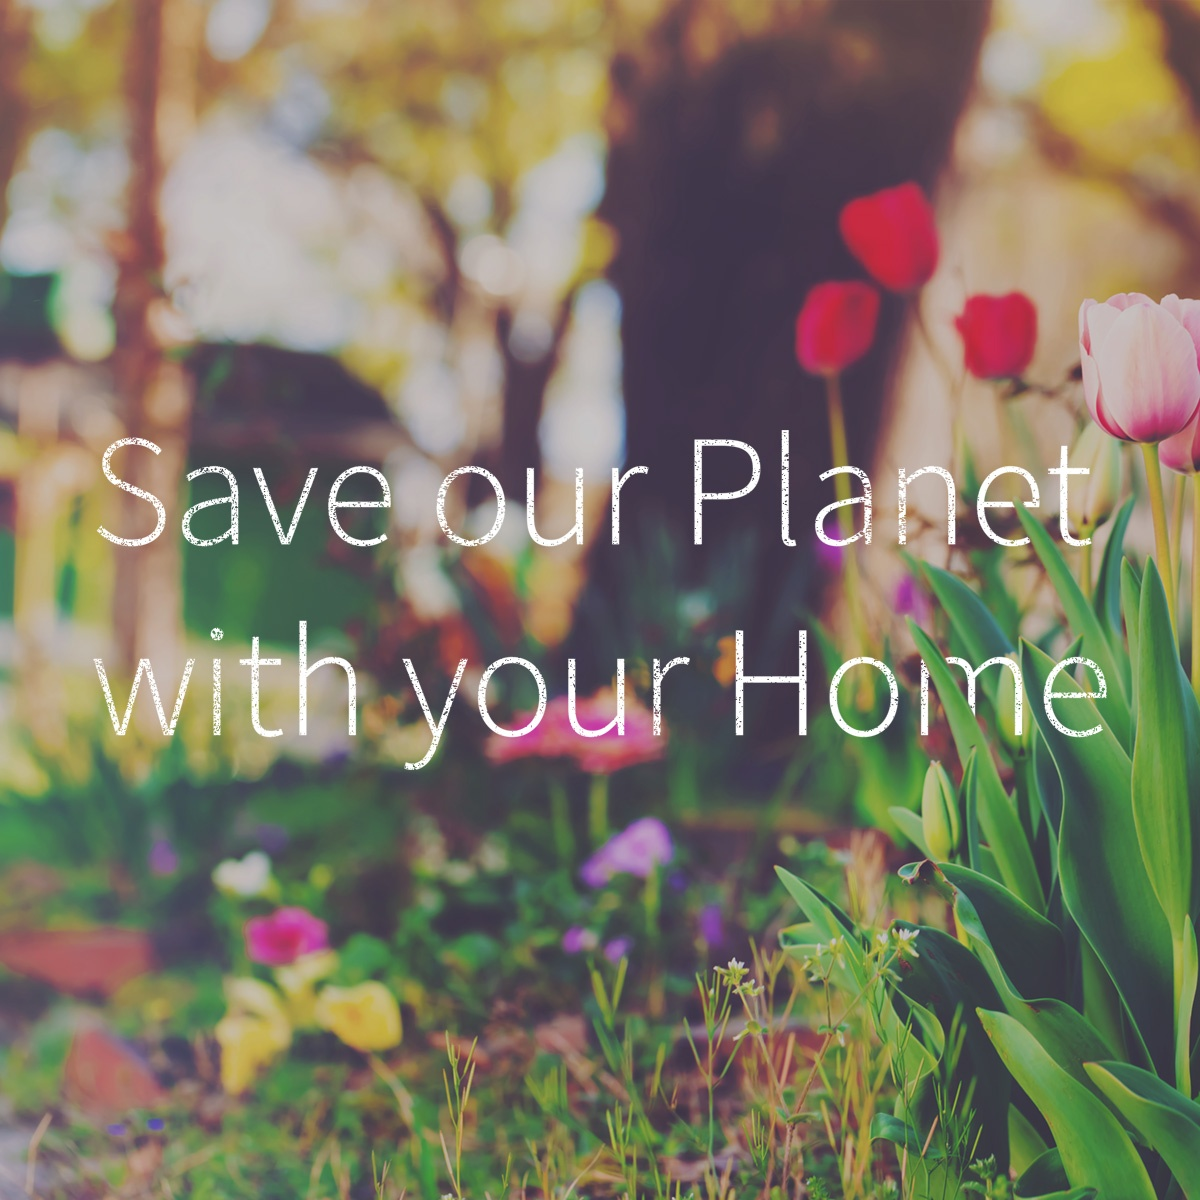 Save our planet with your home blog.jpg